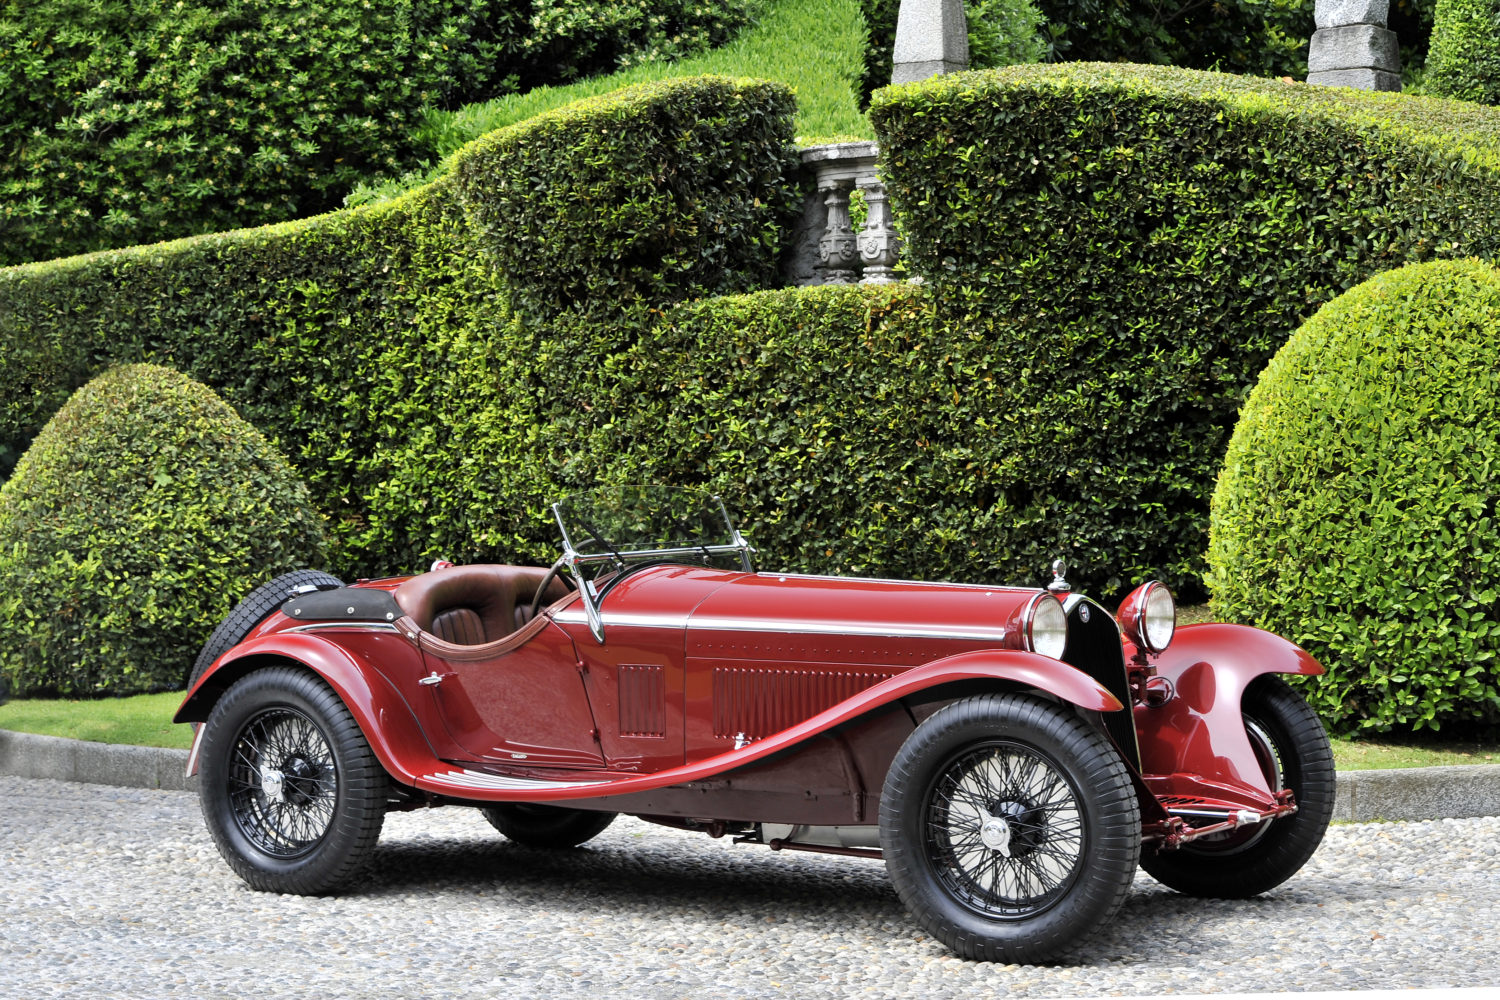 Concours of Elegance Highlights 15 Incredible Cars Set for Windsor Castle